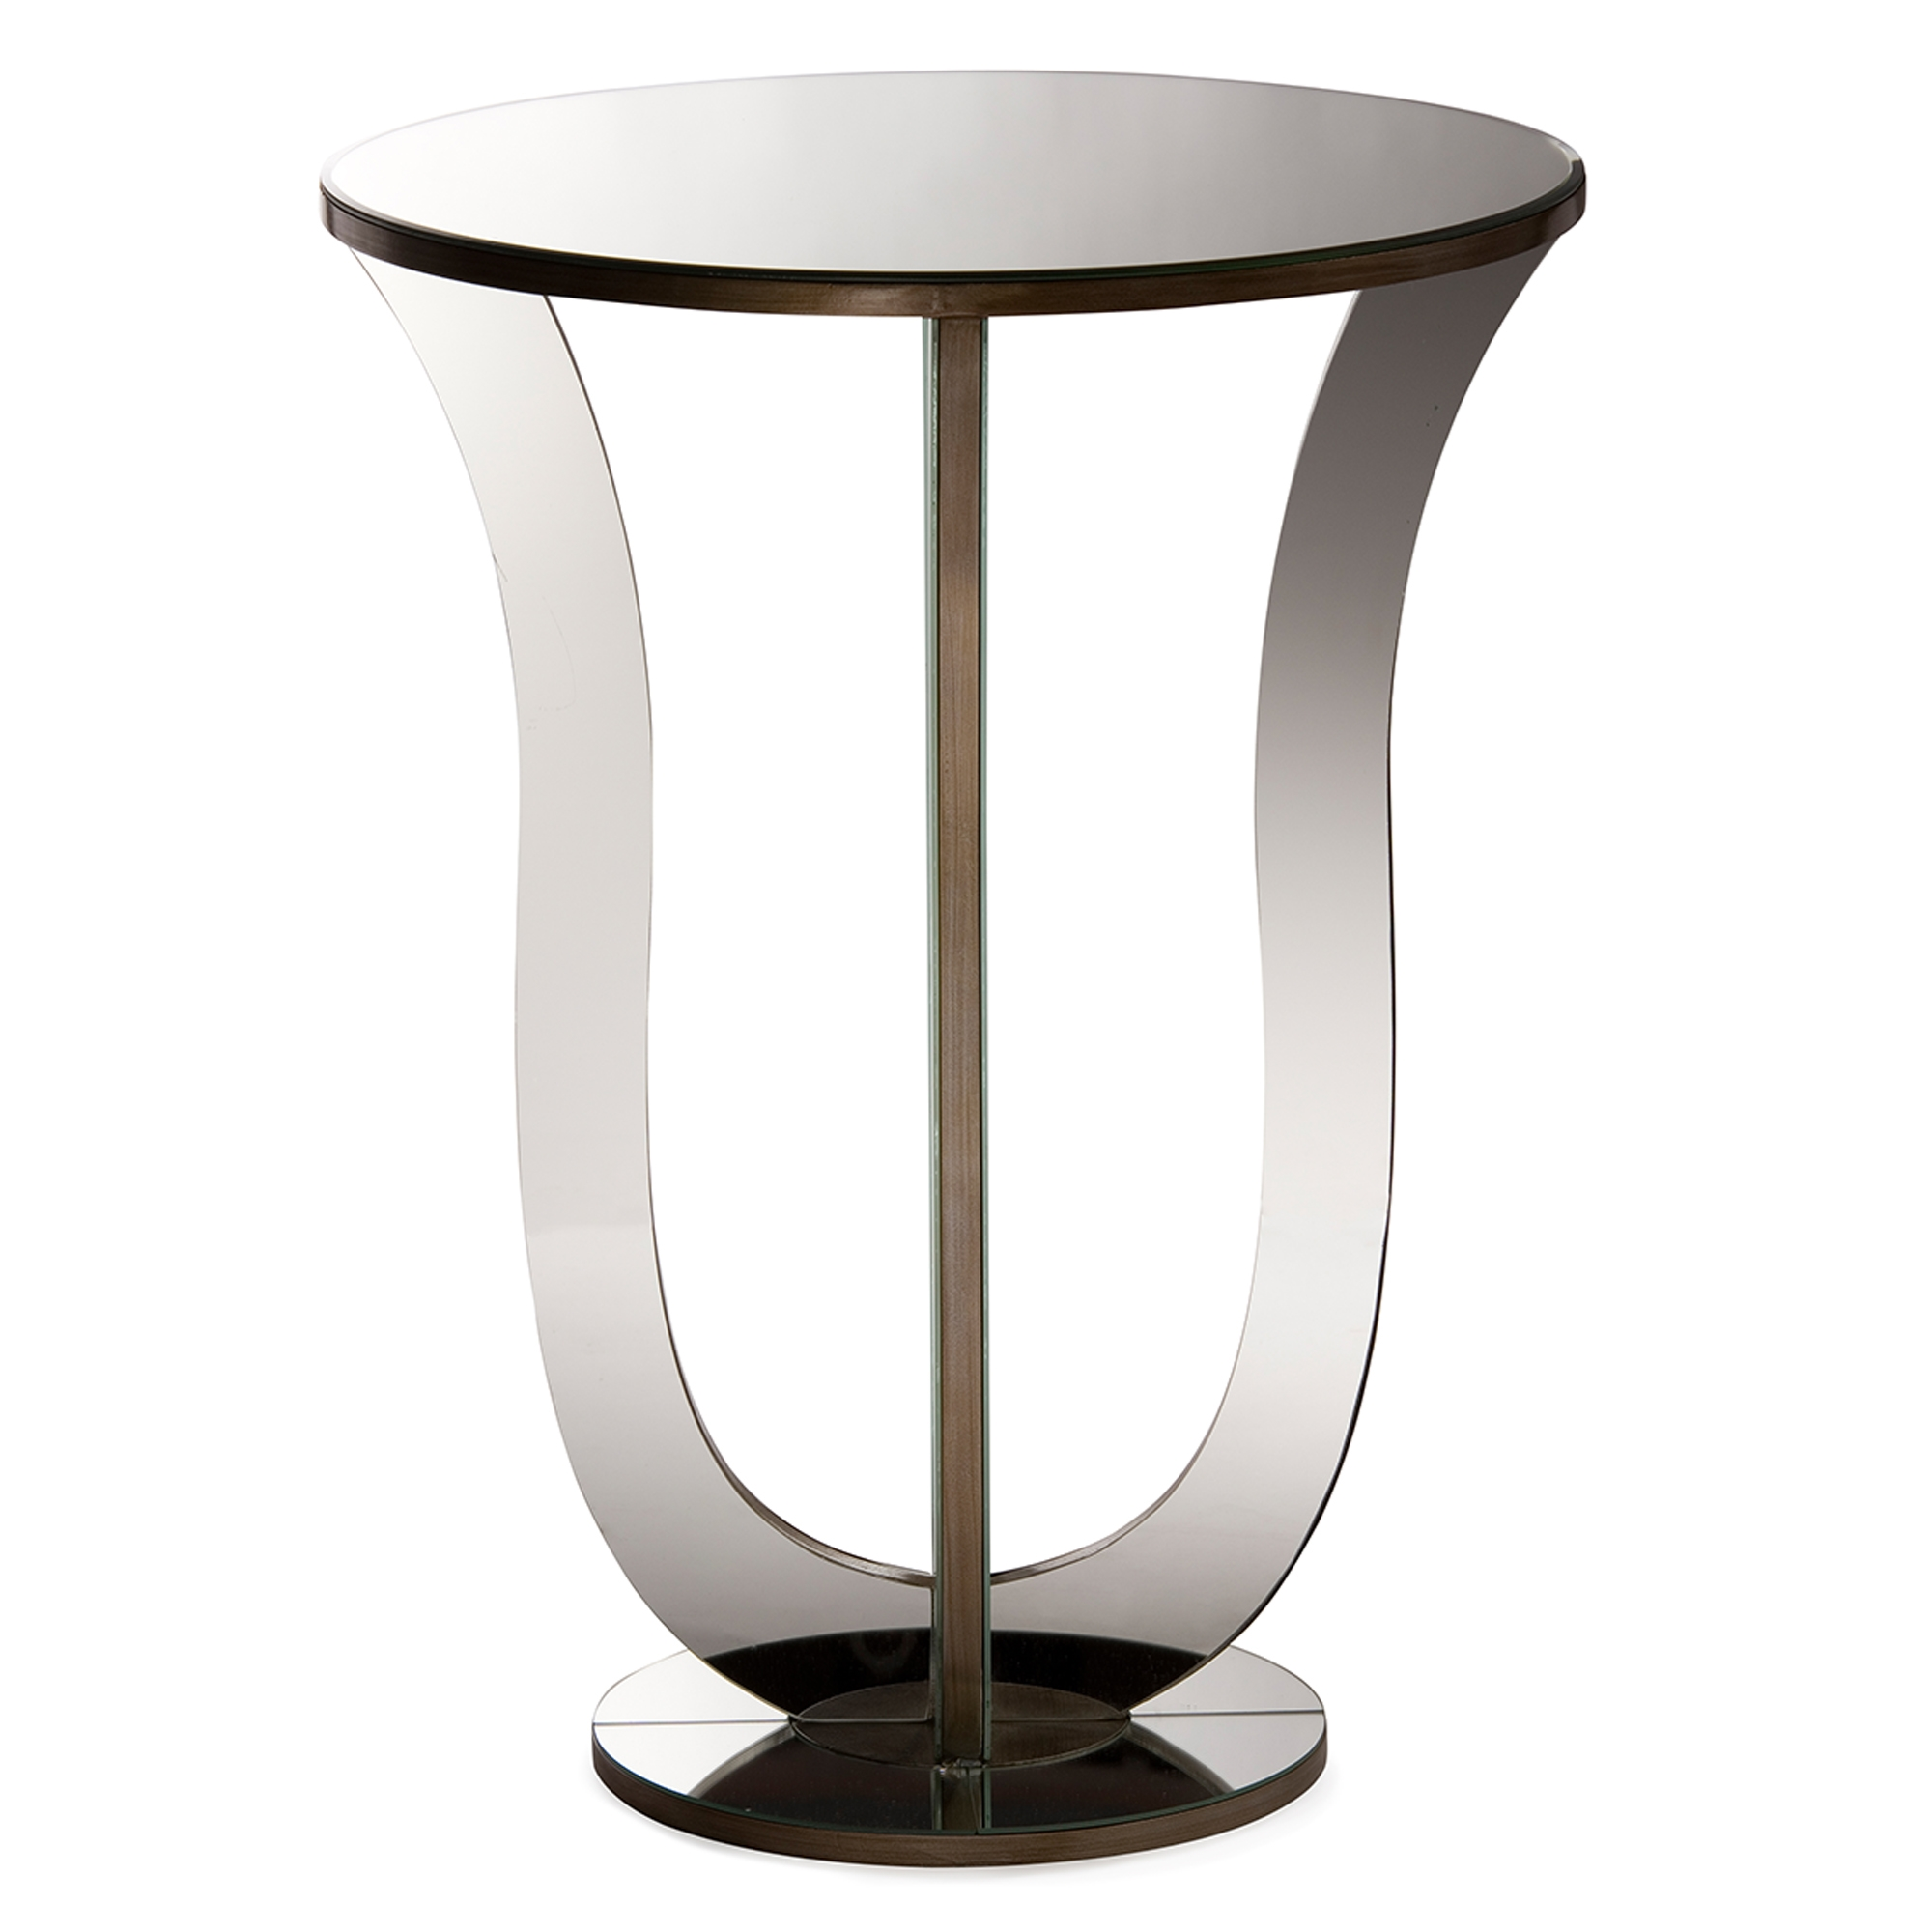 baxton studio kylie modern and hollywood regency glamour style mirrored accent side table bsors1242